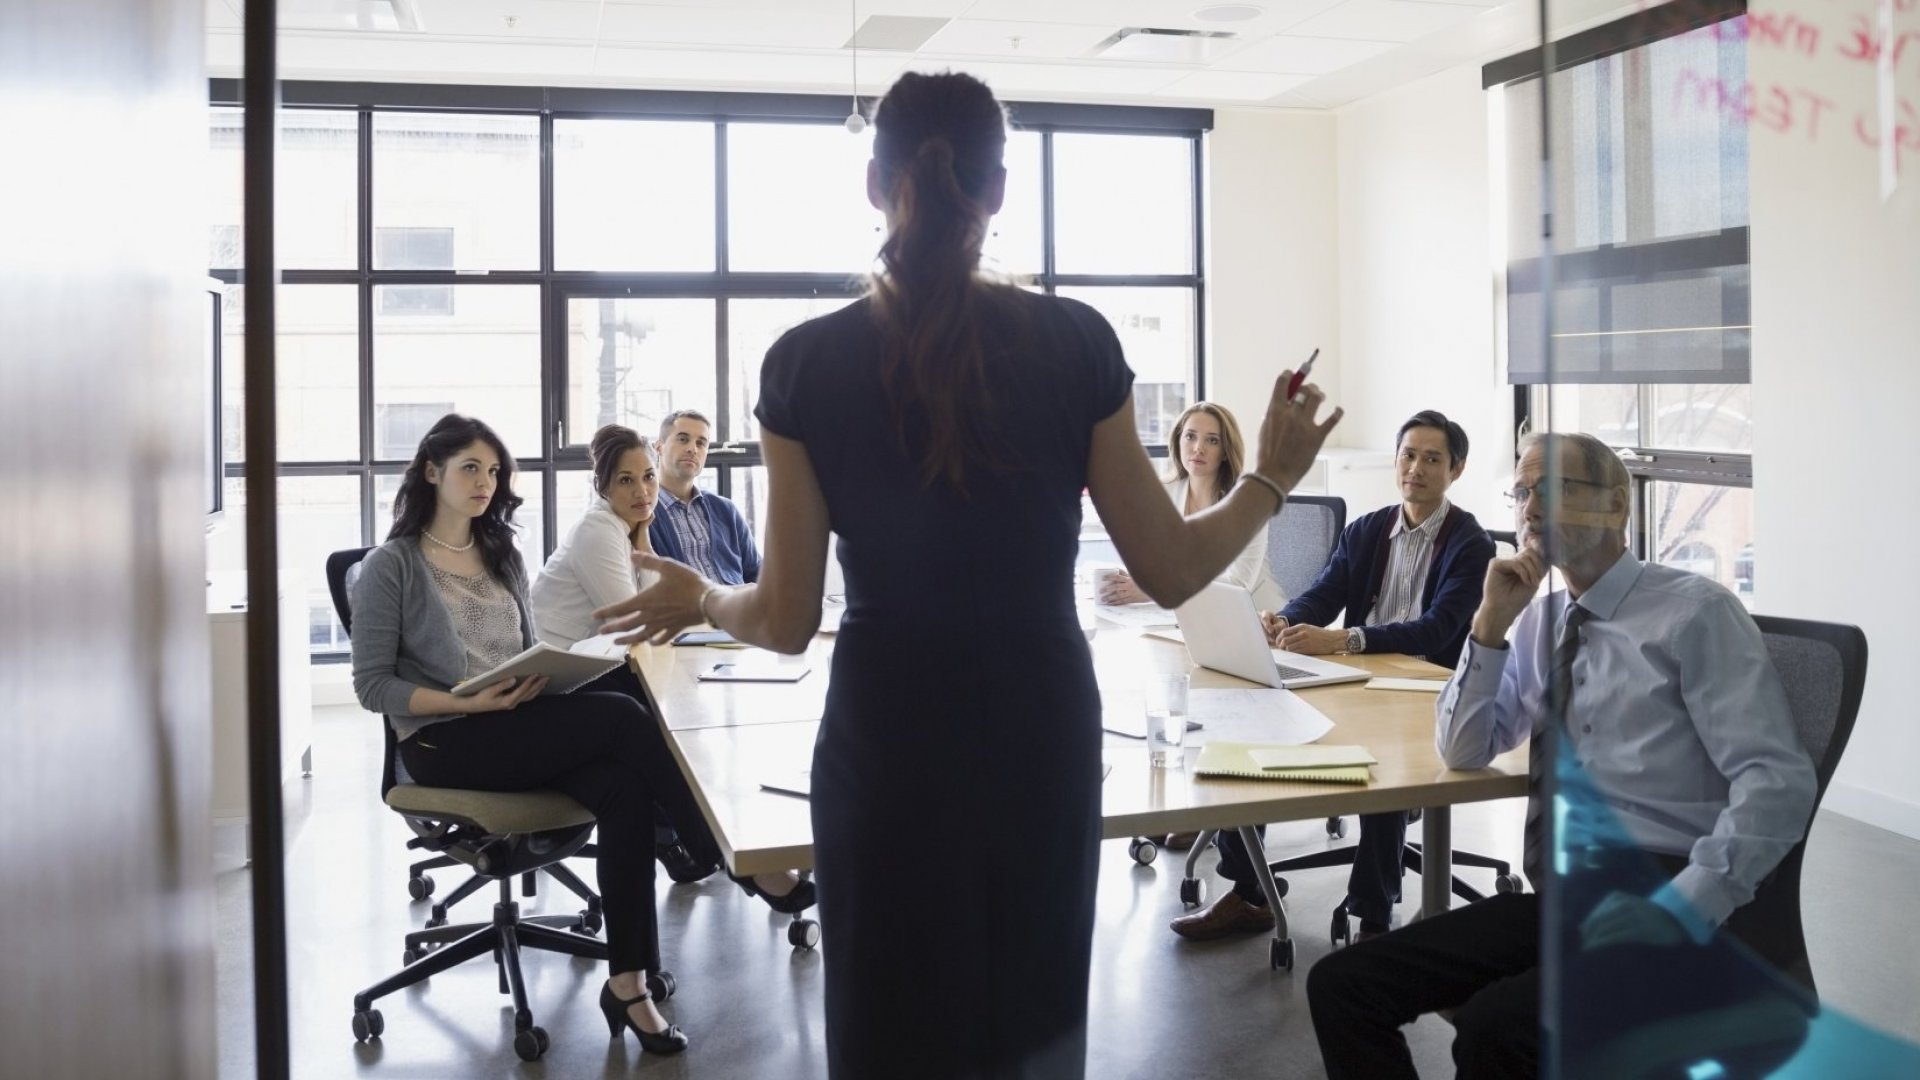 3 Things All Great Leaders Have In Common